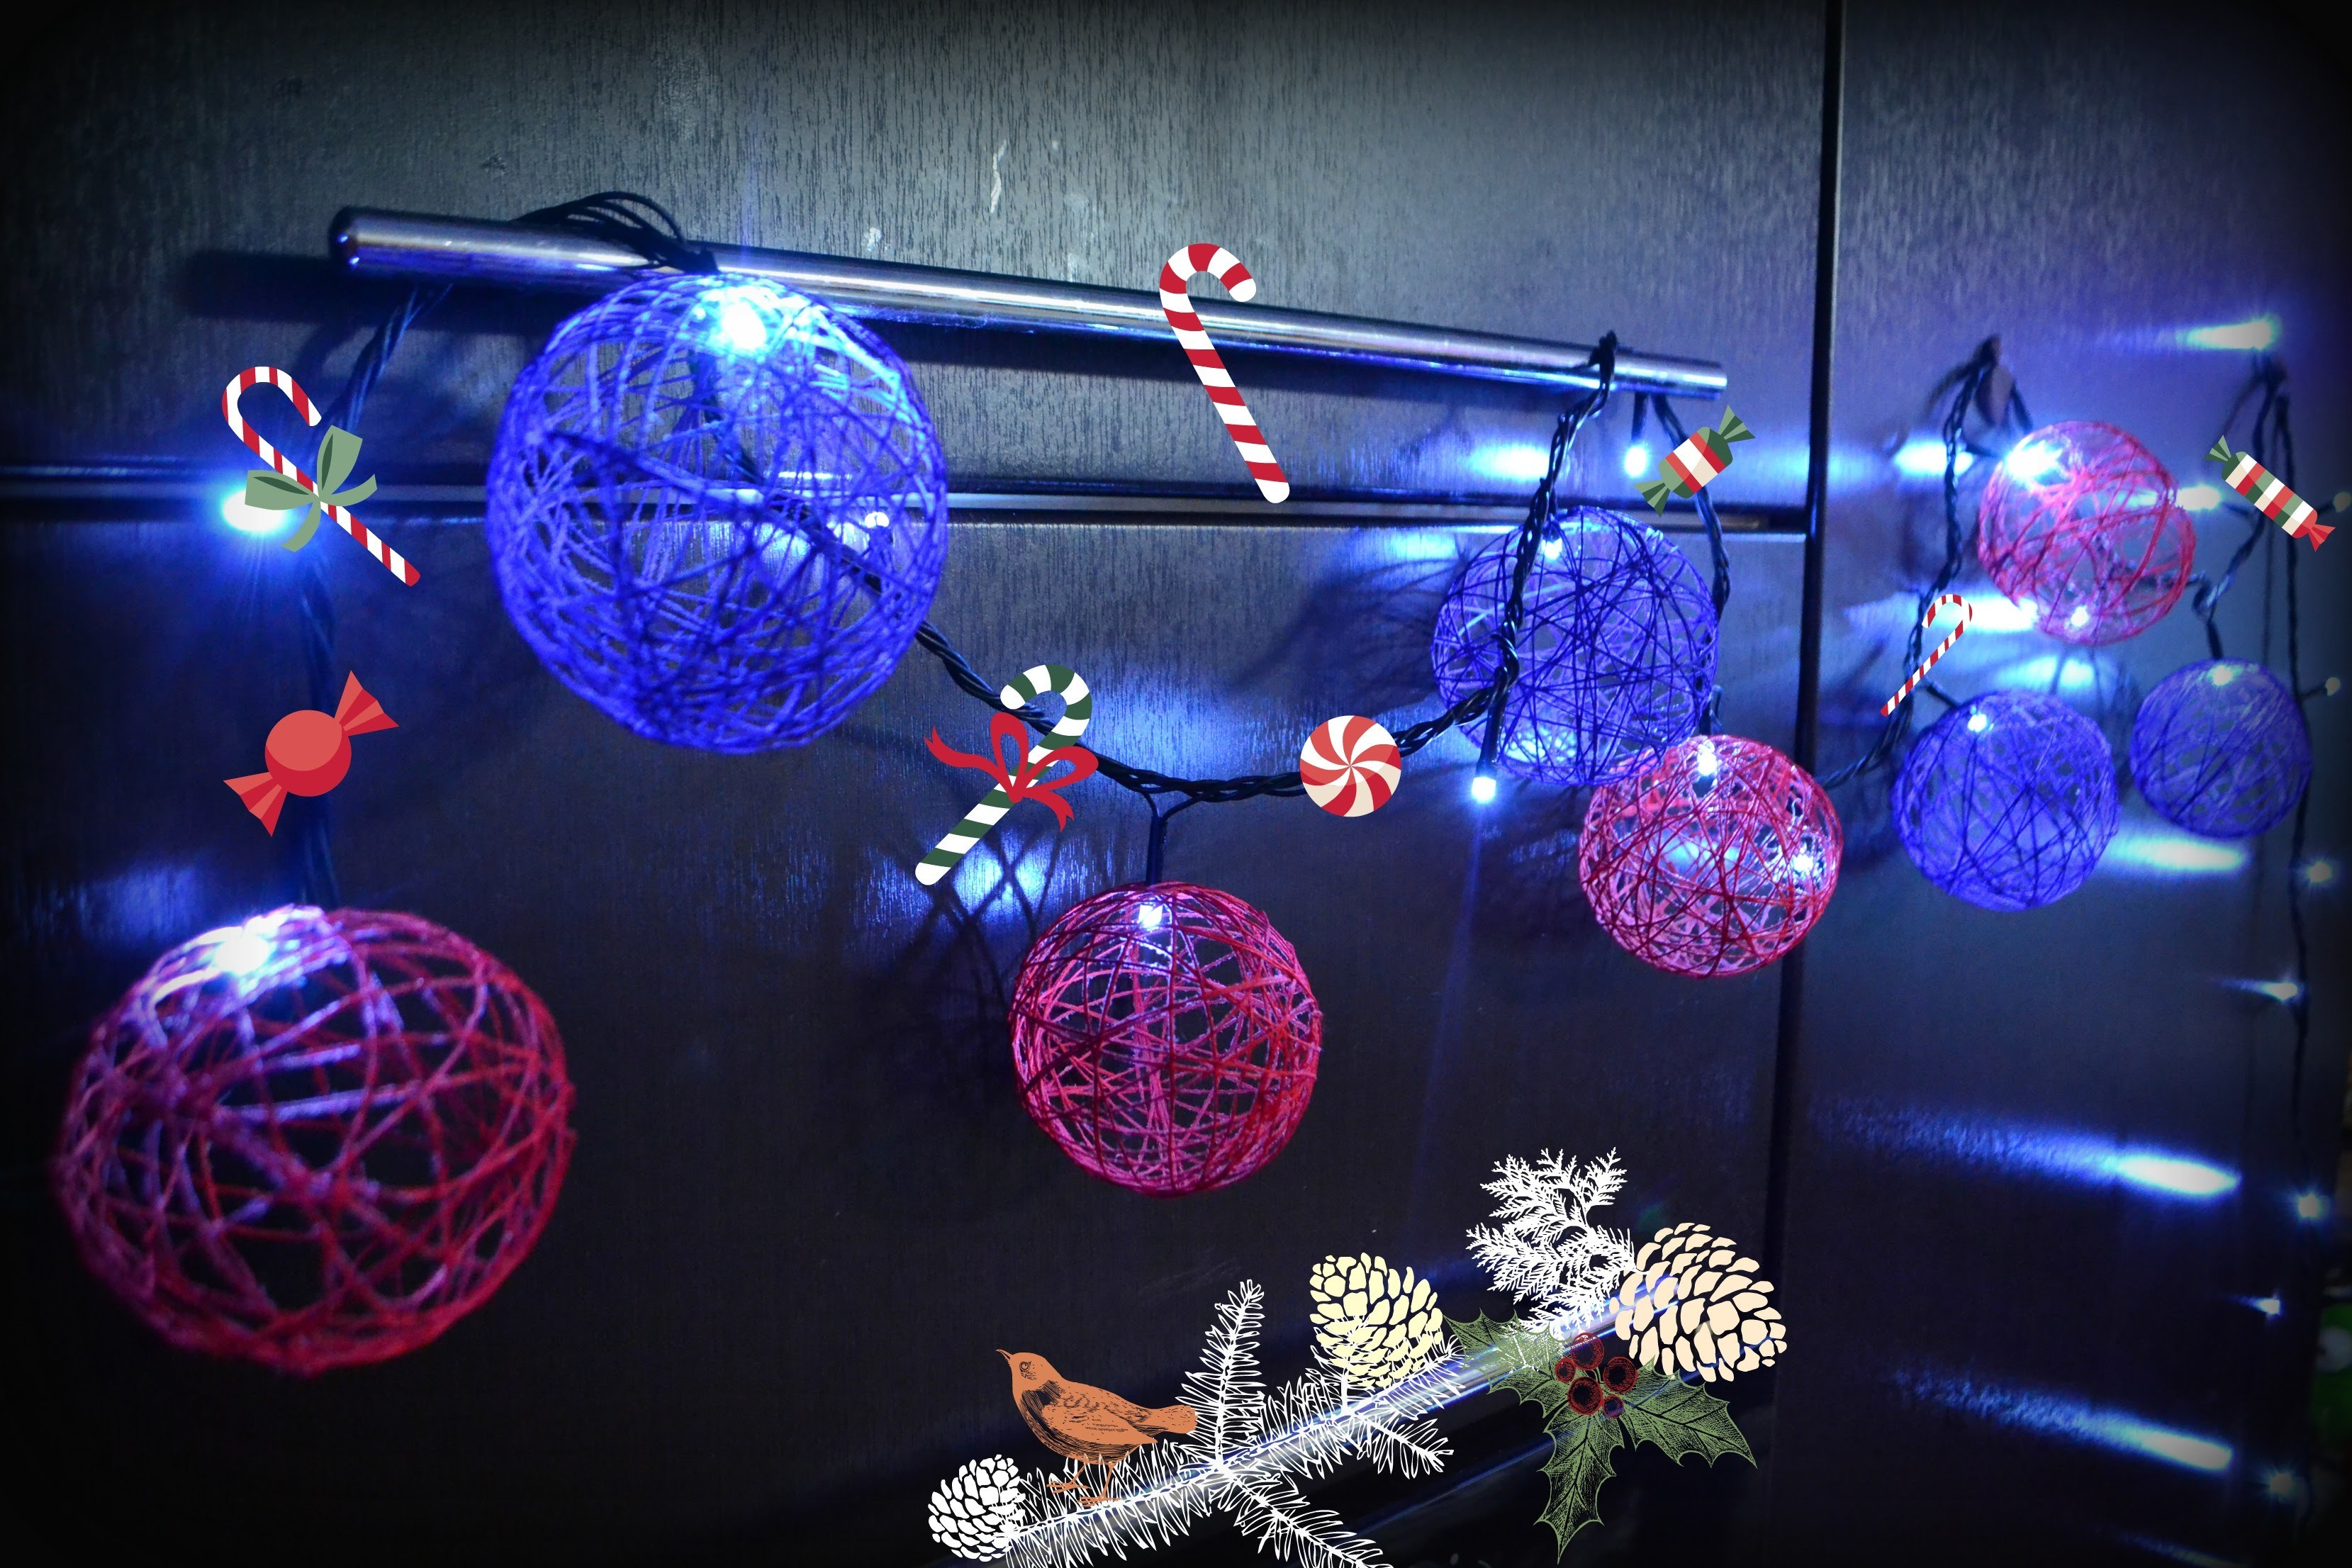 How to craft Ball Ornaments for Lights featuring Yarn